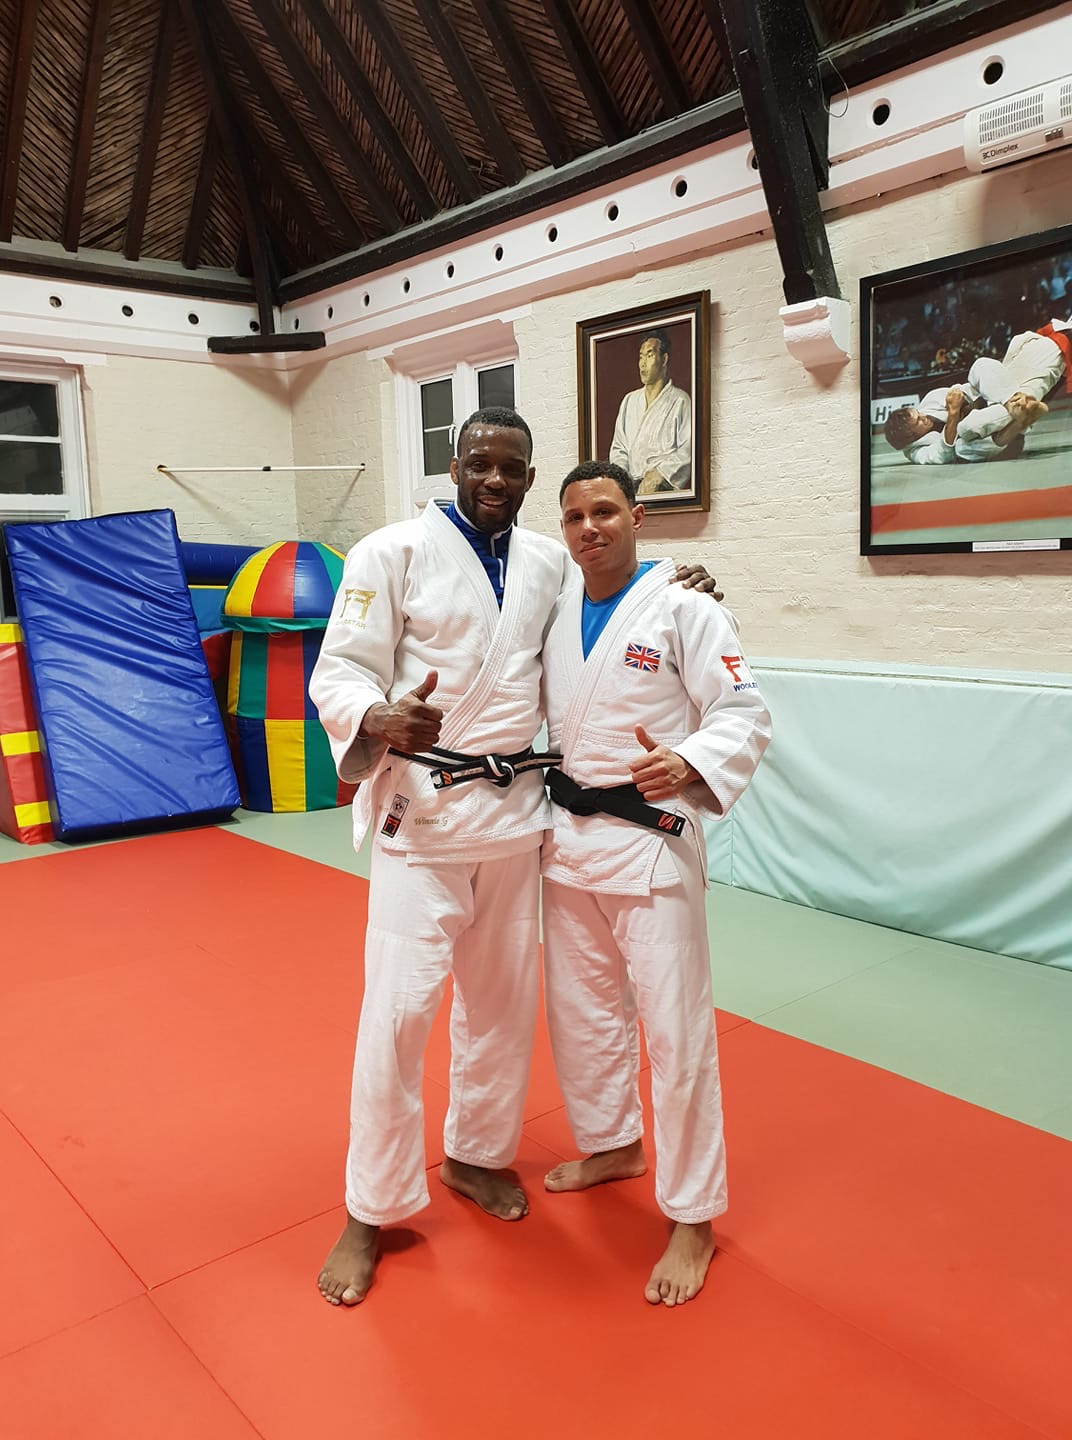 Jason with Winston Gordon, British Judoka and three-time Olympian at the Budokwai.